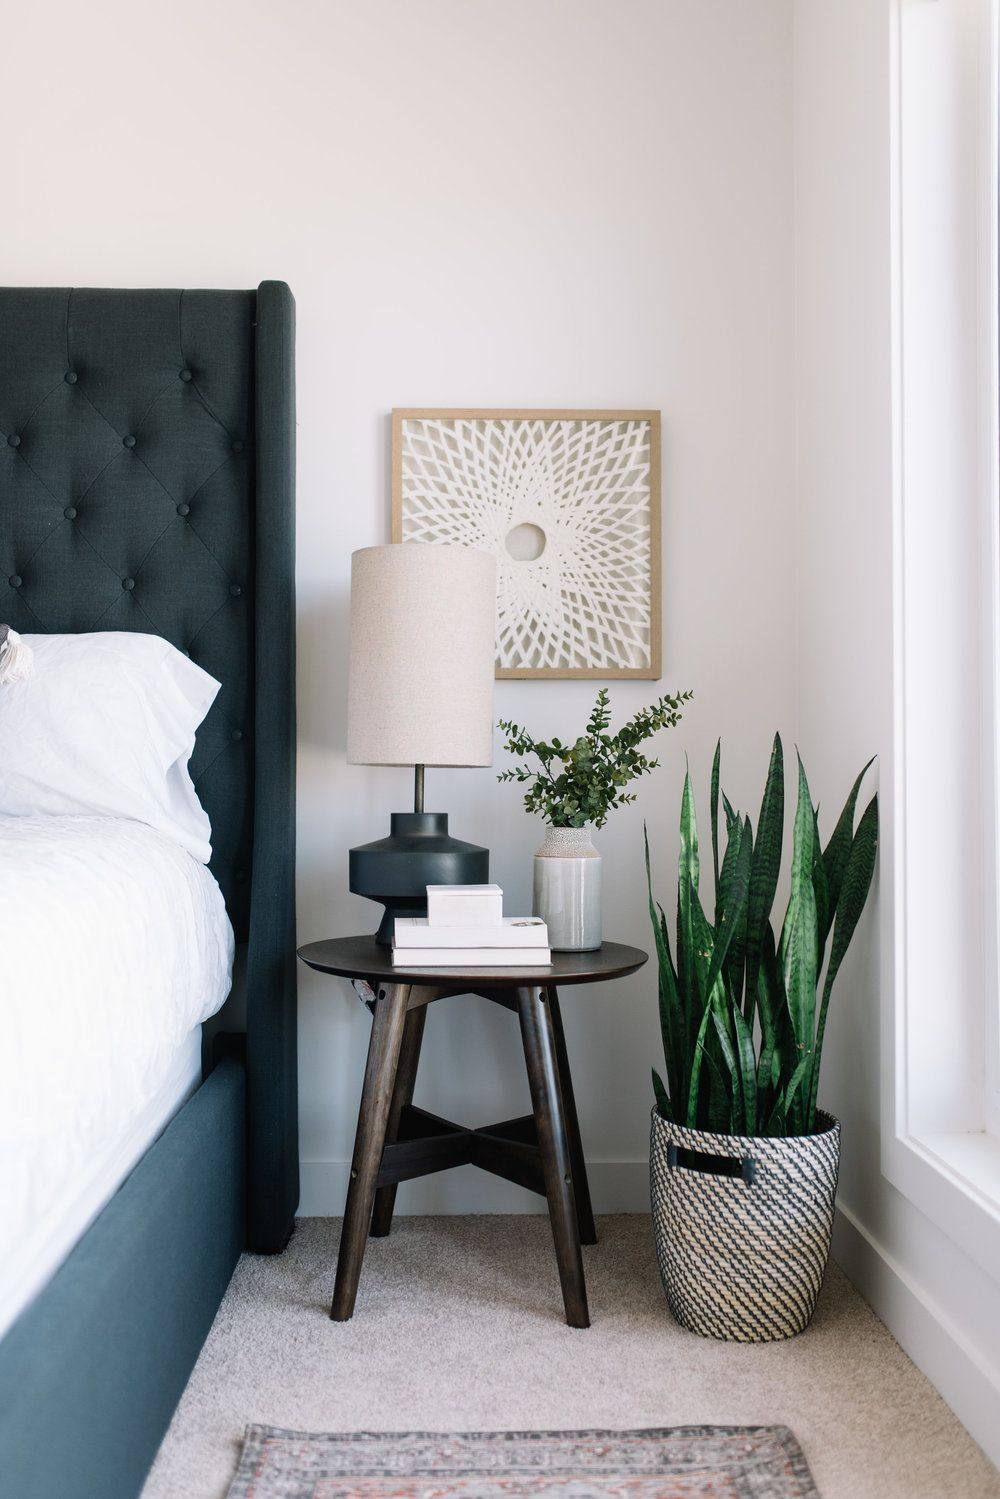 Moving Up A Peek At Our Bedroom Refresh In 2020 Bedside Table